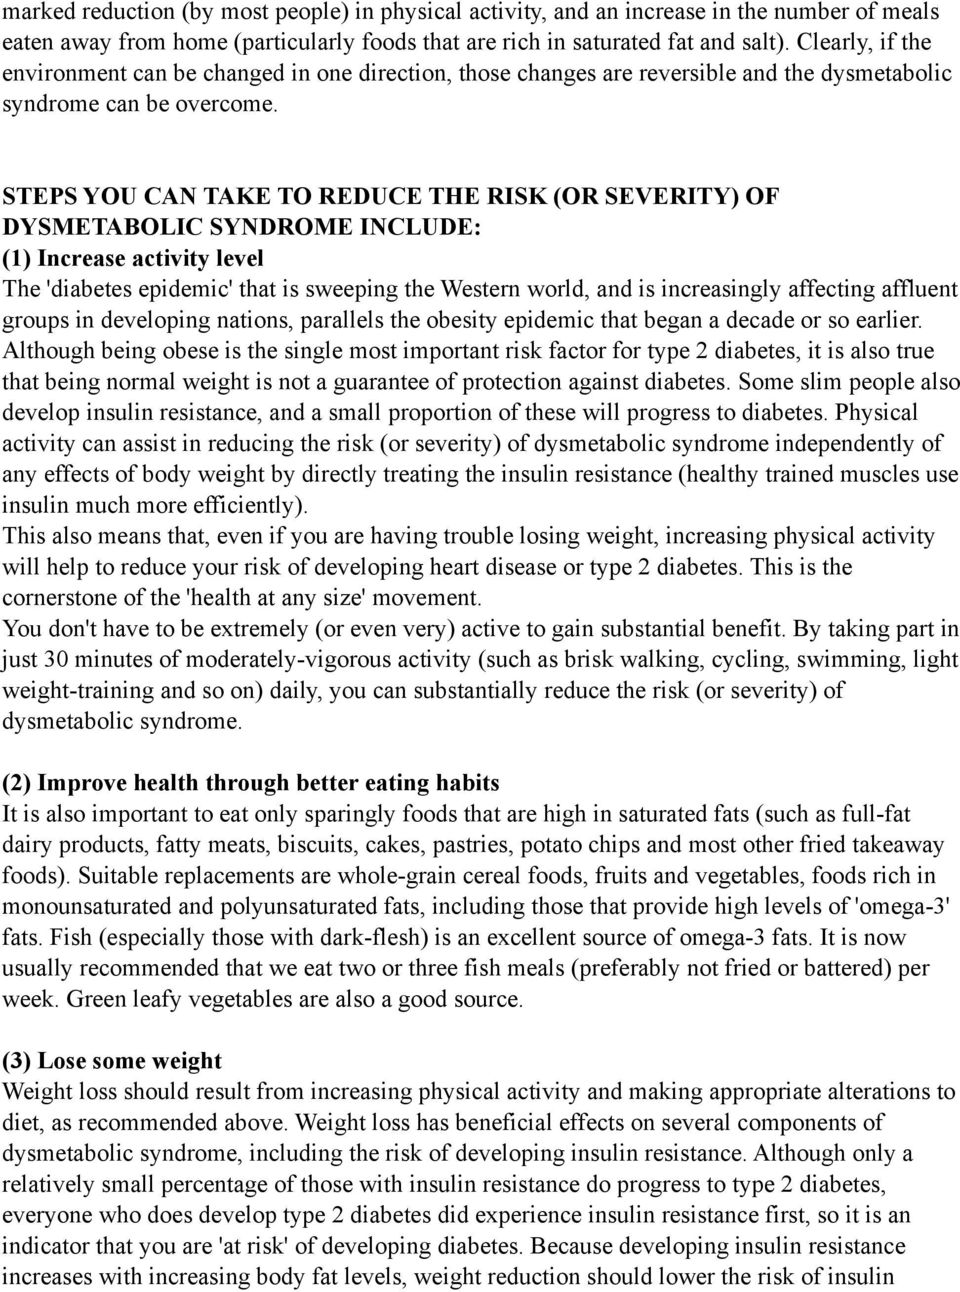 STEPS YOU CAN TAKE TO REDUCE THE RISK (OR SEVERITY) OF DYSMETABOLIC SYNDROME INCLUDE: (1) Increase activity level The 'diabetes epidemic' that is sweeping the Western world, and is increasingly